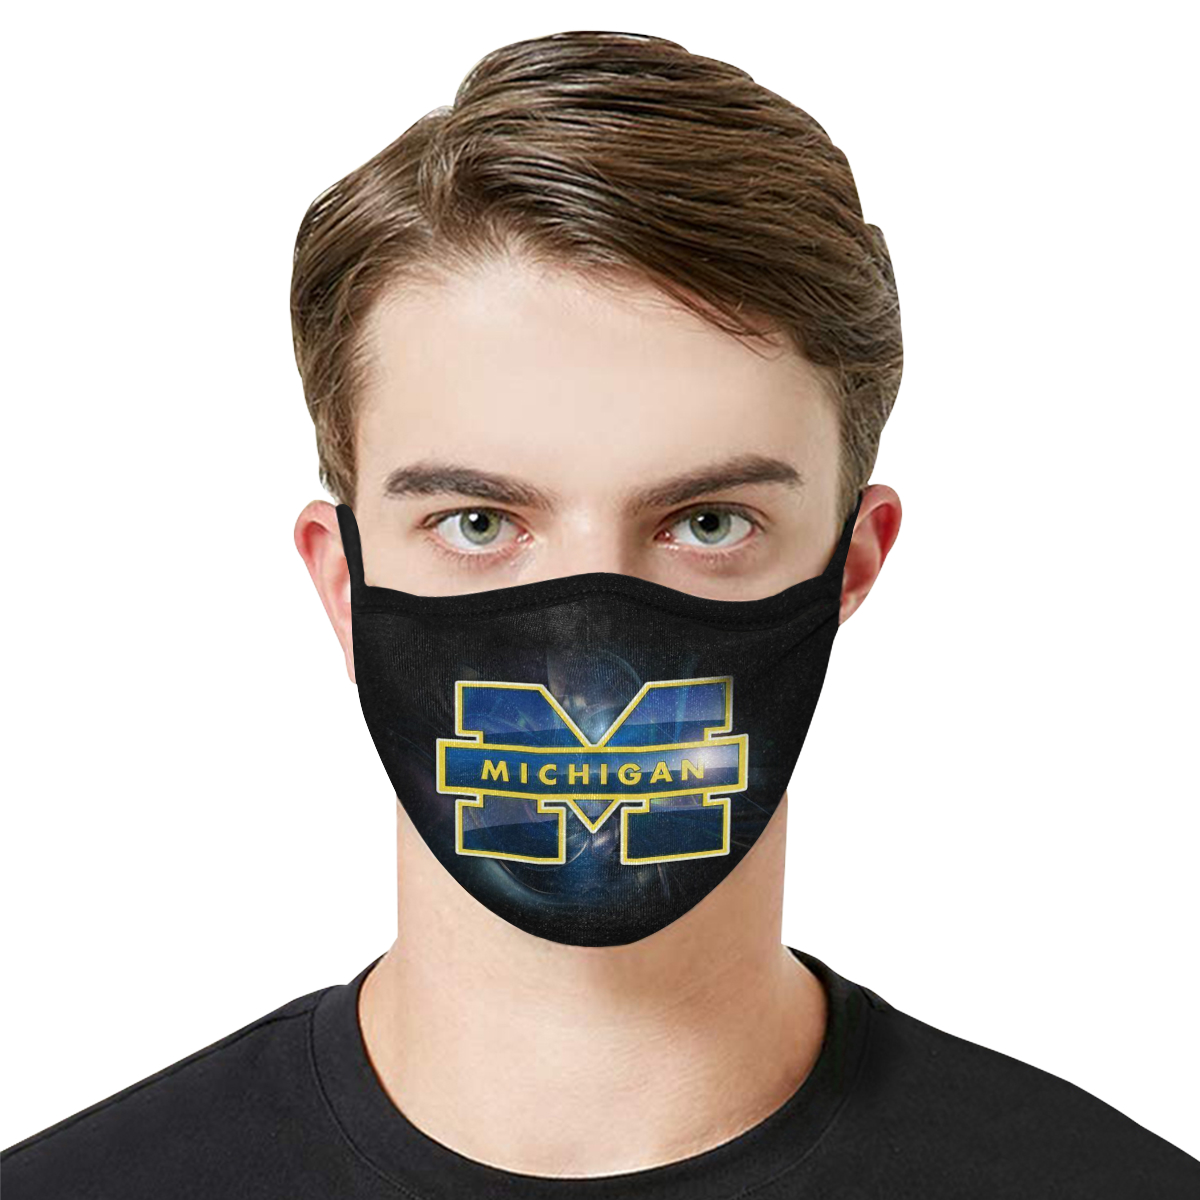 National football league michigan wolverines cotton face mask 1